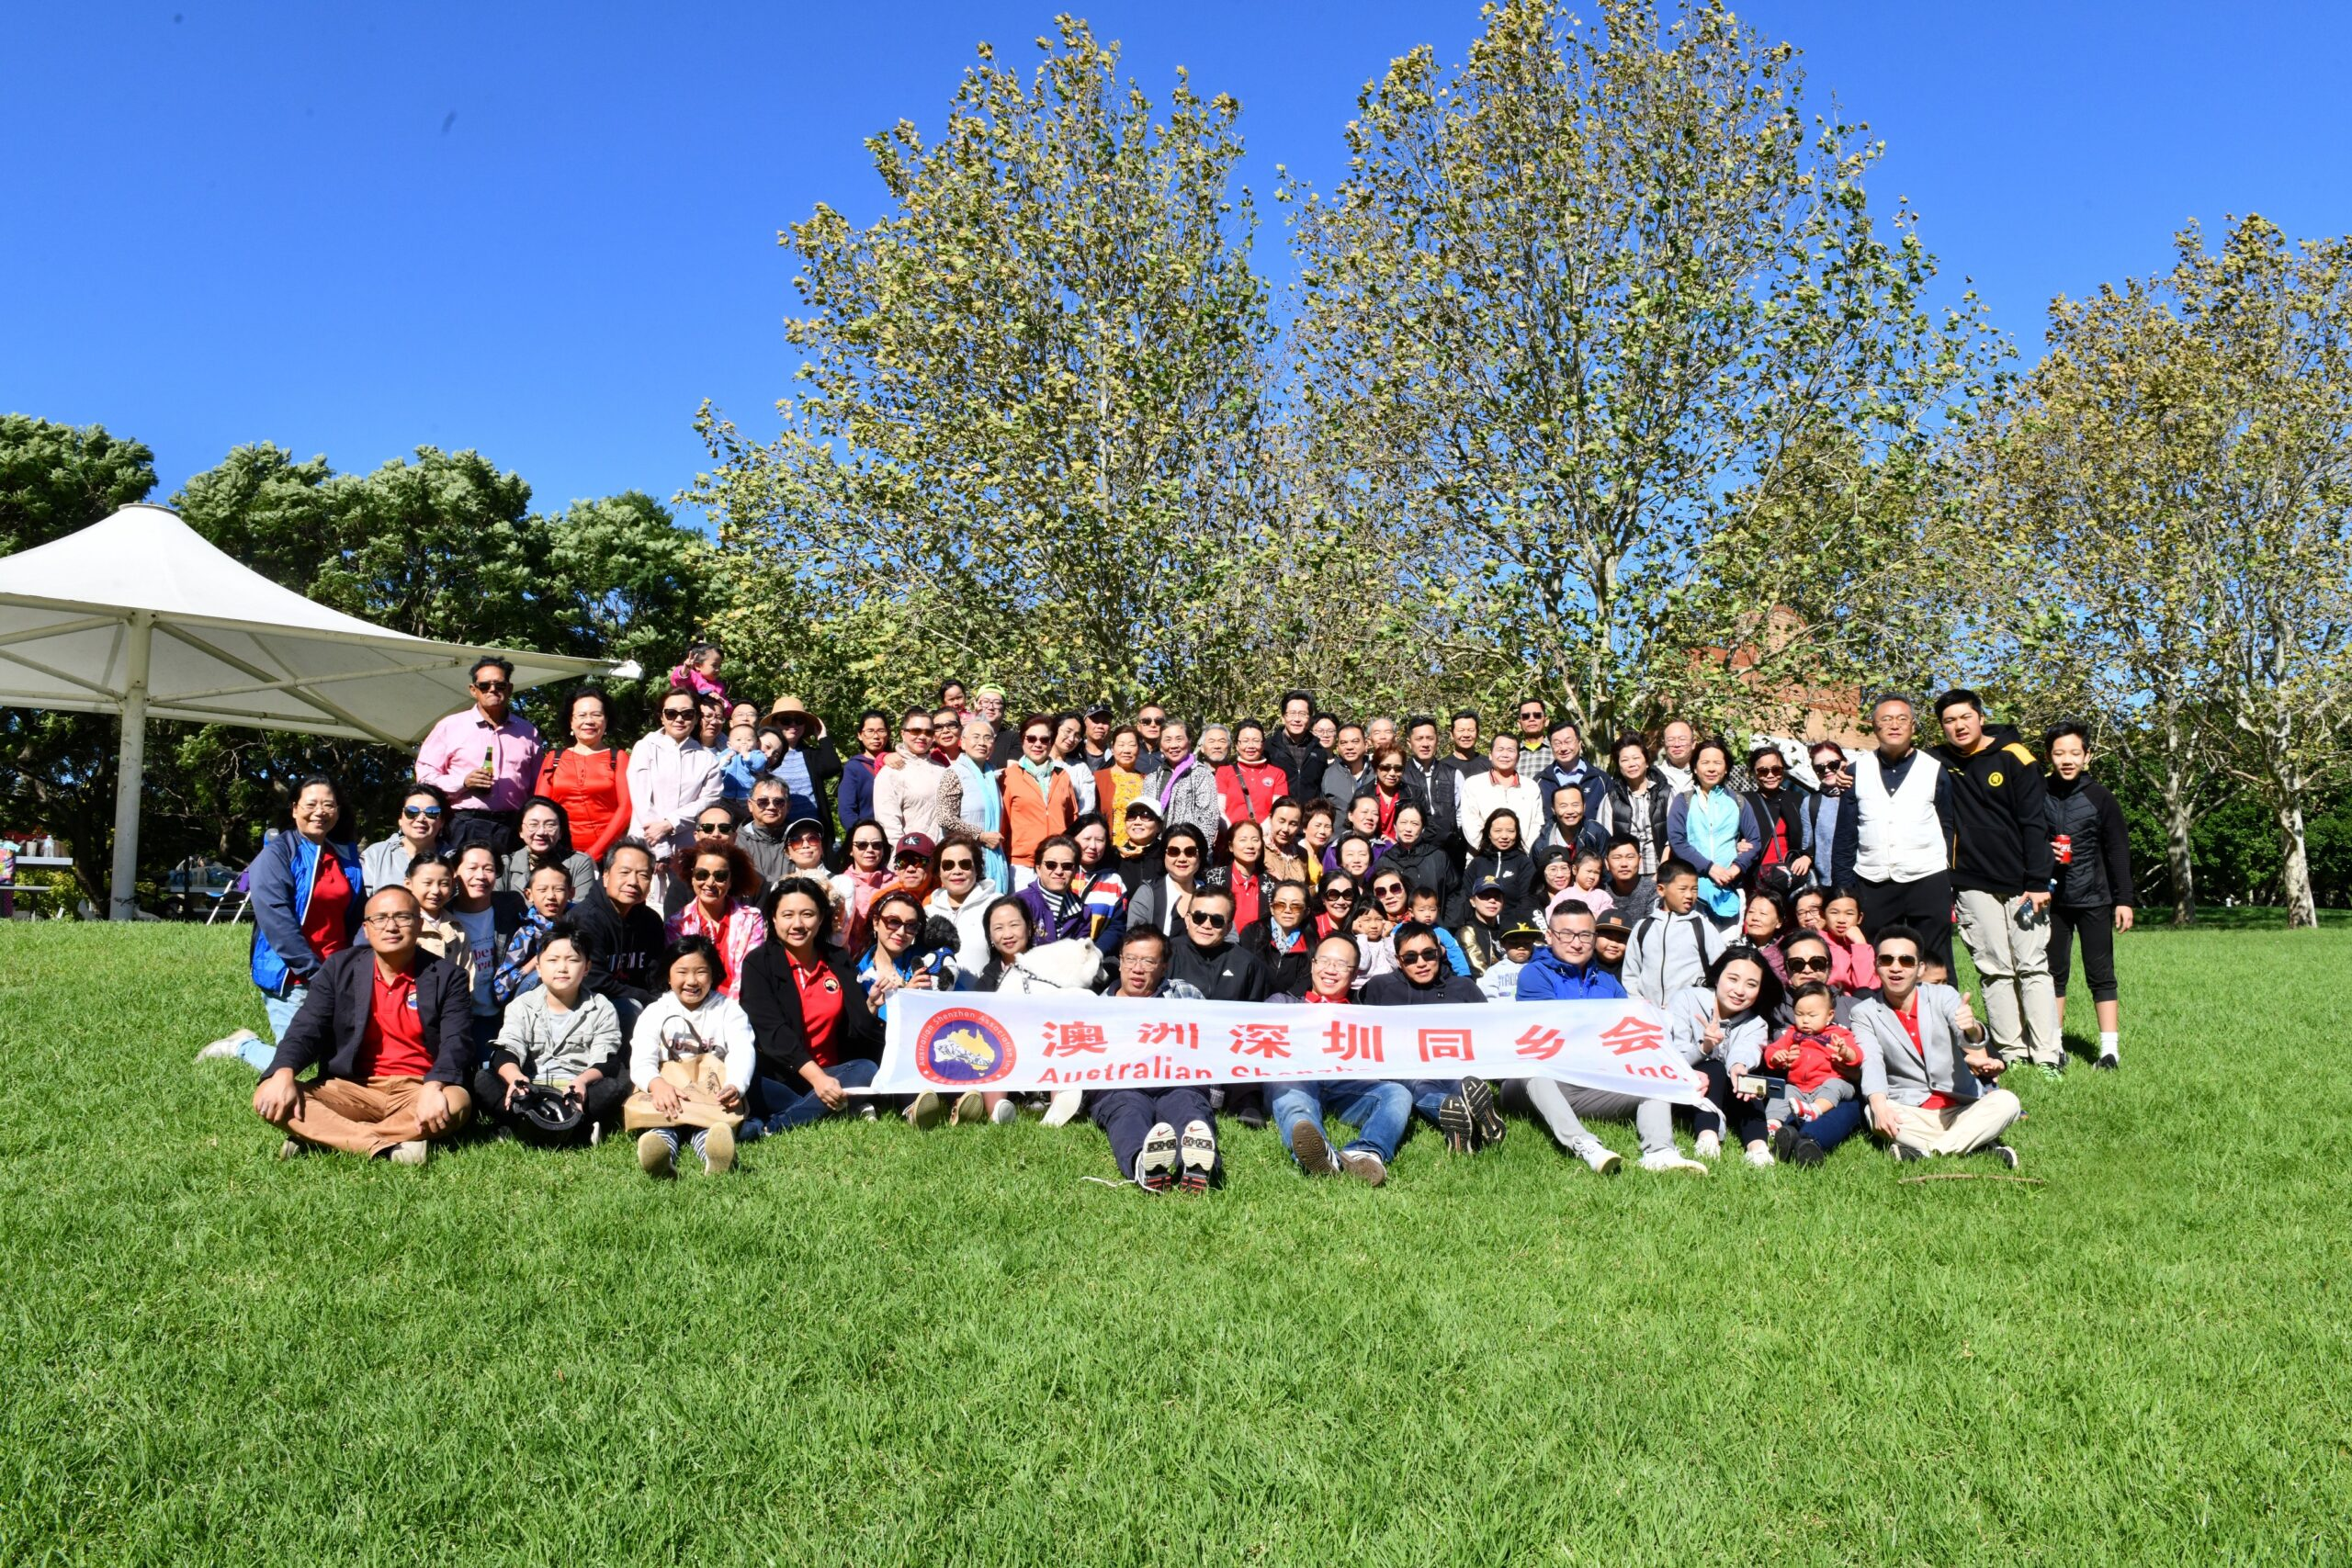 More than 120 people attended the first event after the epidemic in Shenzhen, Australia, to reunite with the community at an outdoor barbecue | Australia Chinatown Community News